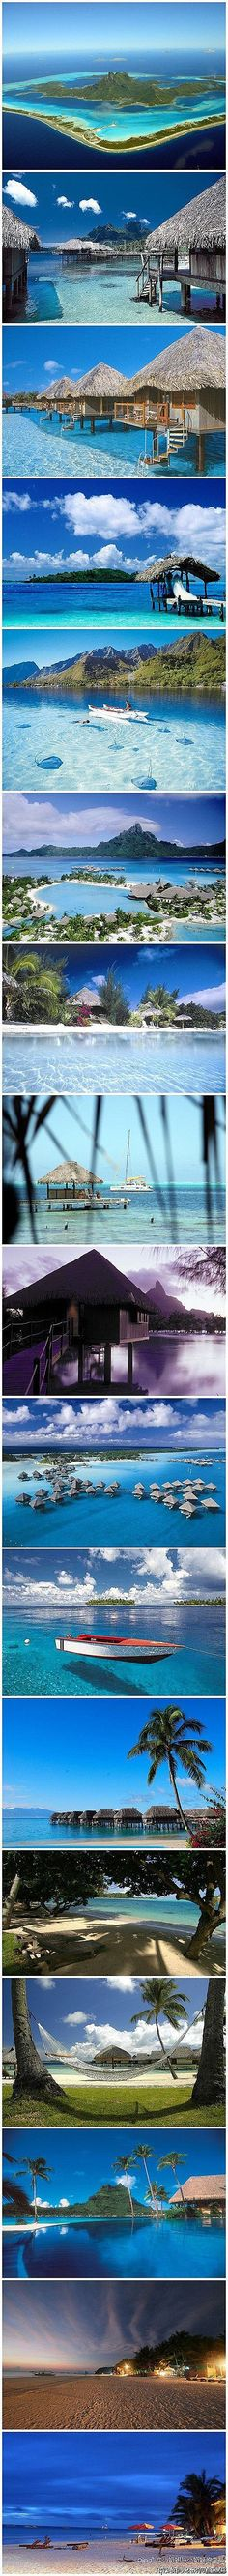 Tahiti's, Bora Bora - honeymoon paradise ♥